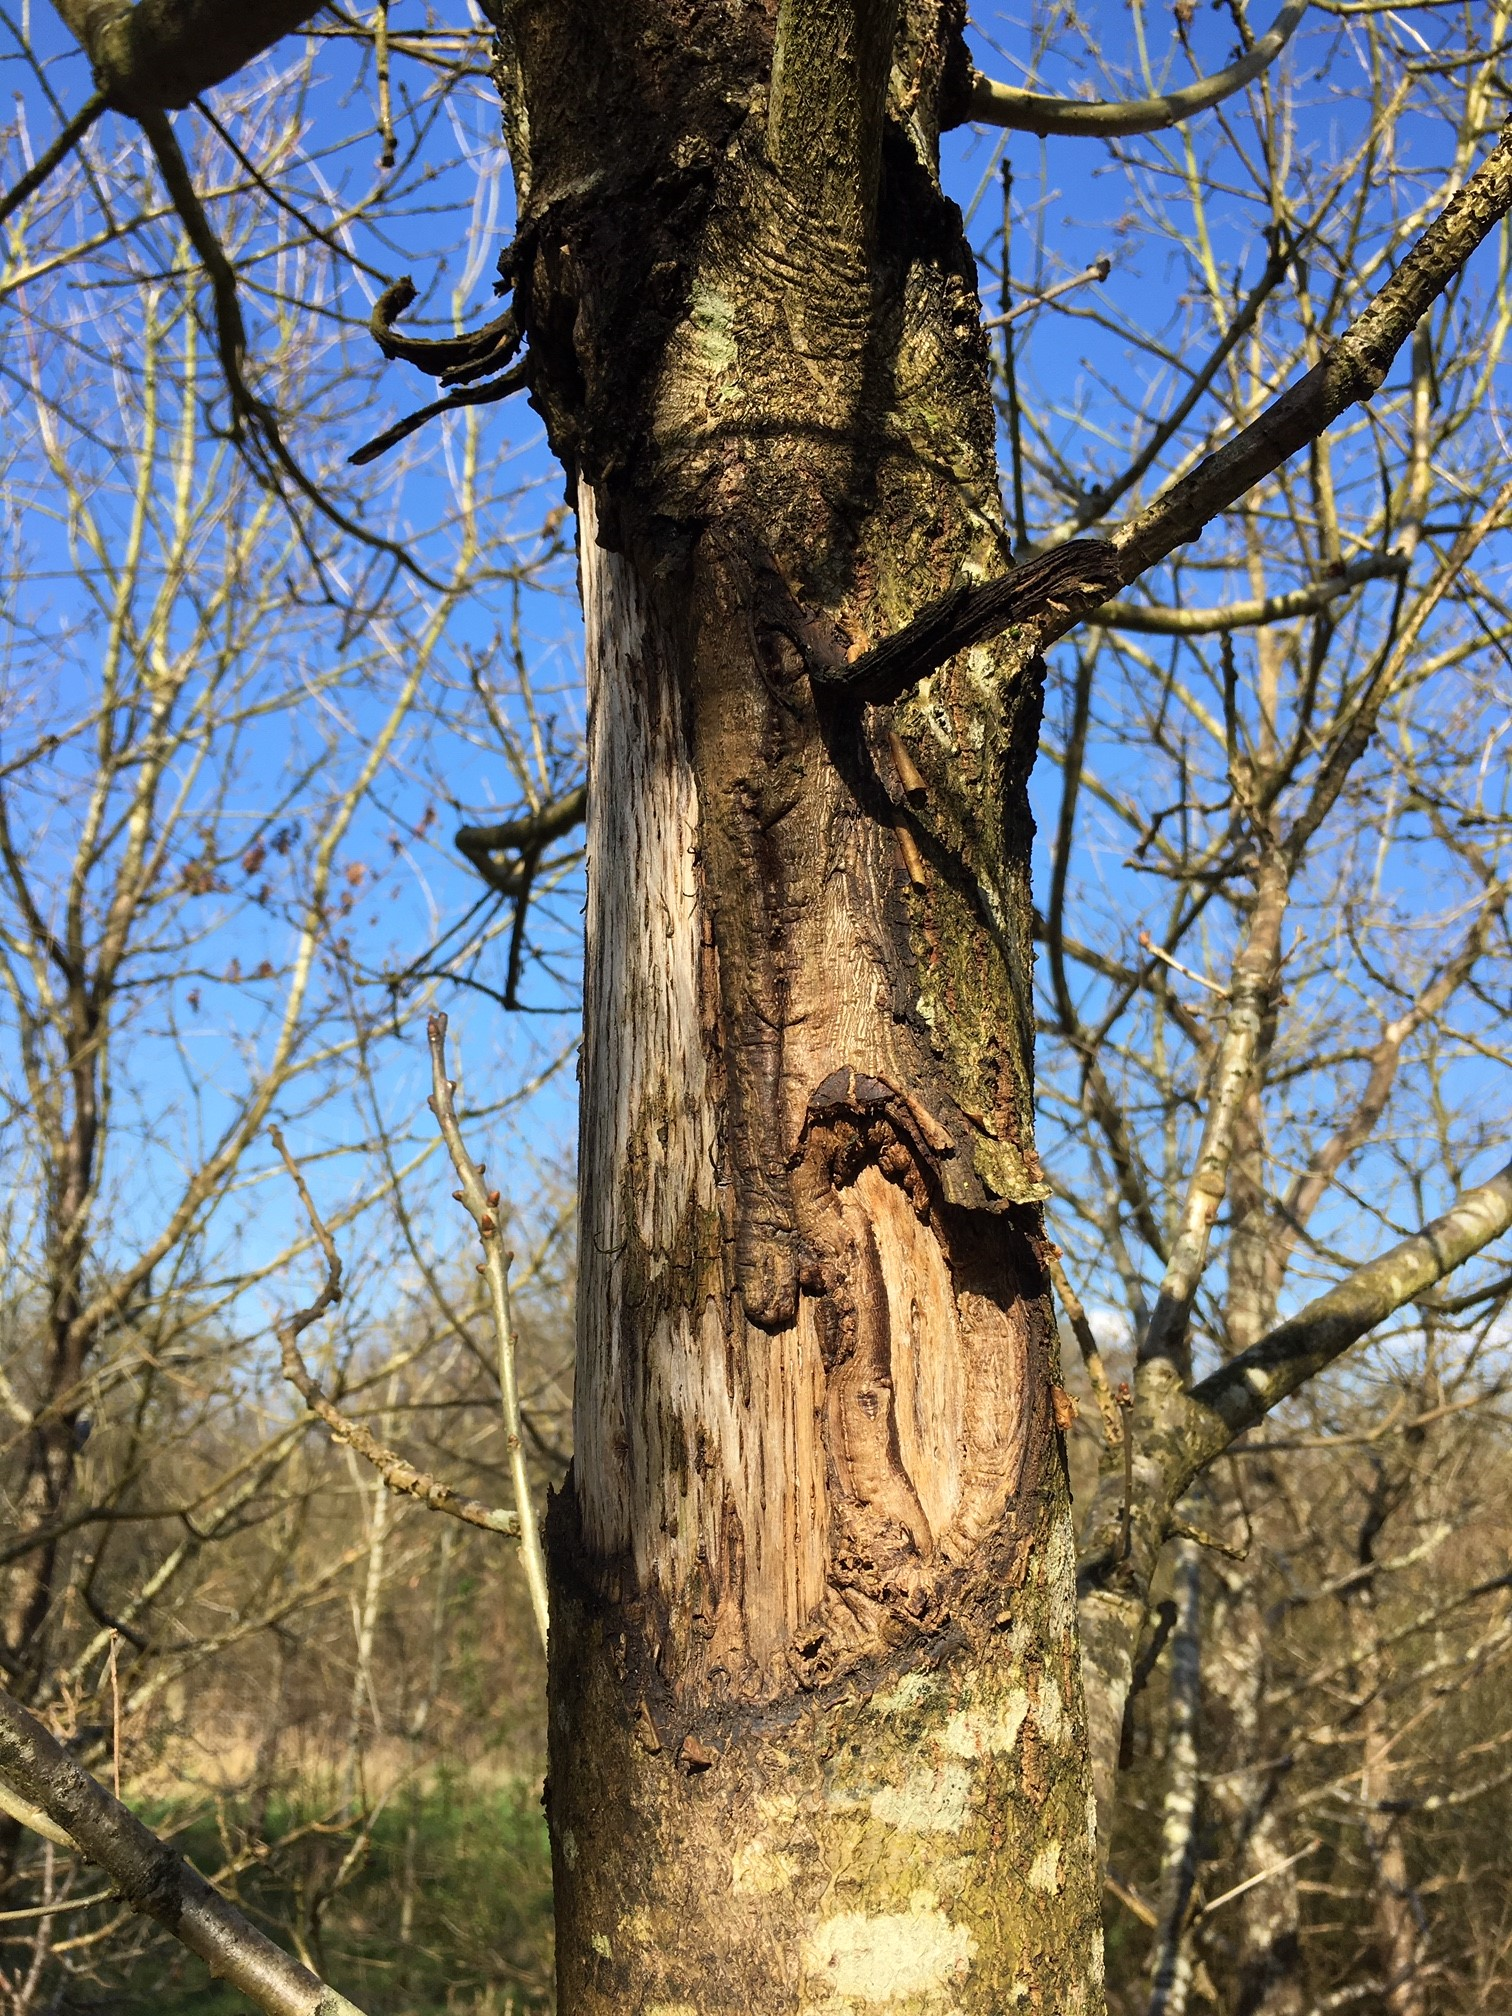 Bark stripping damage in the National Forest by Daniel Small